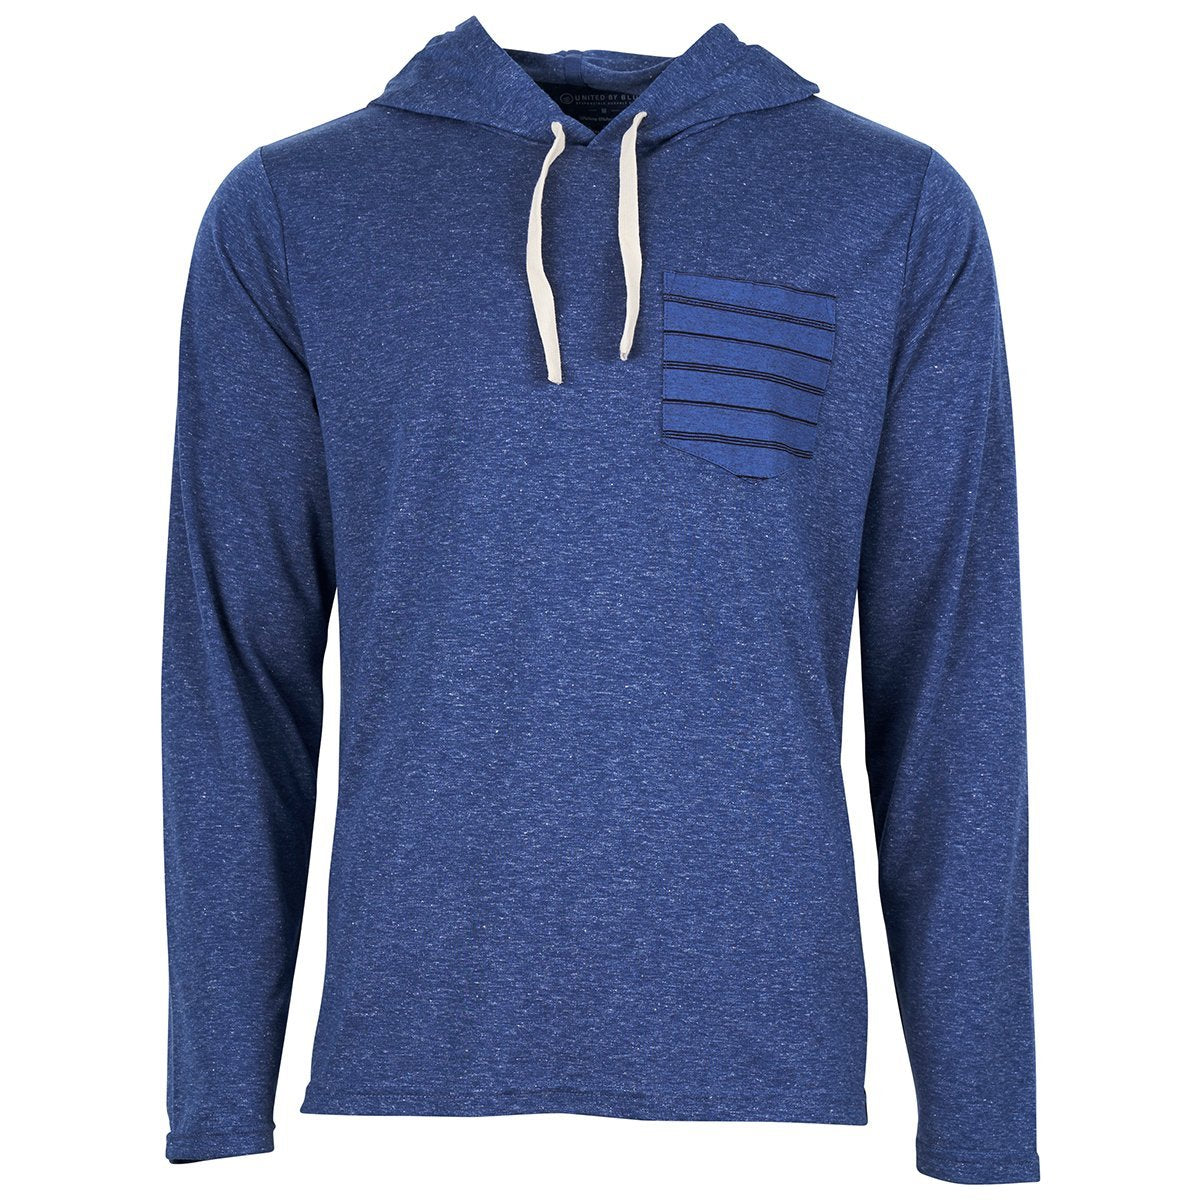 United By Blue | Men's Hooded T-Shirt | Long Sleeve Pocket T-Shirt | Lightweight Patrol Hoodie | Midnight